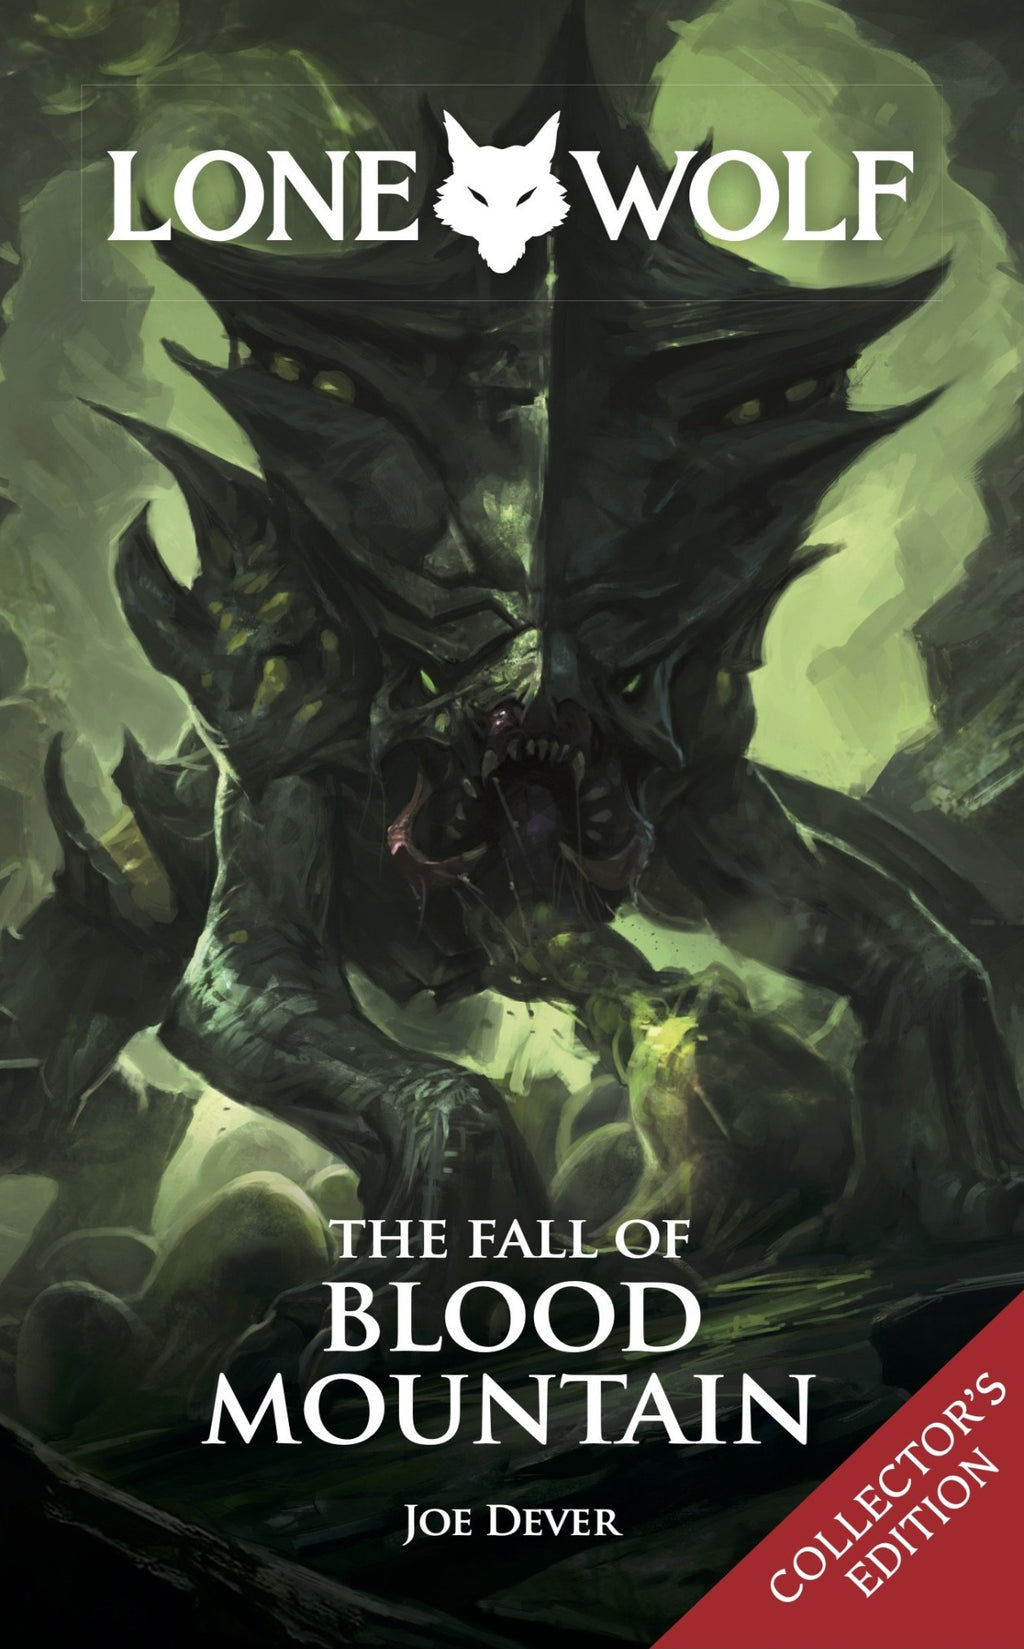 The Fall of Blood Mountain - #26 Collector's Edition